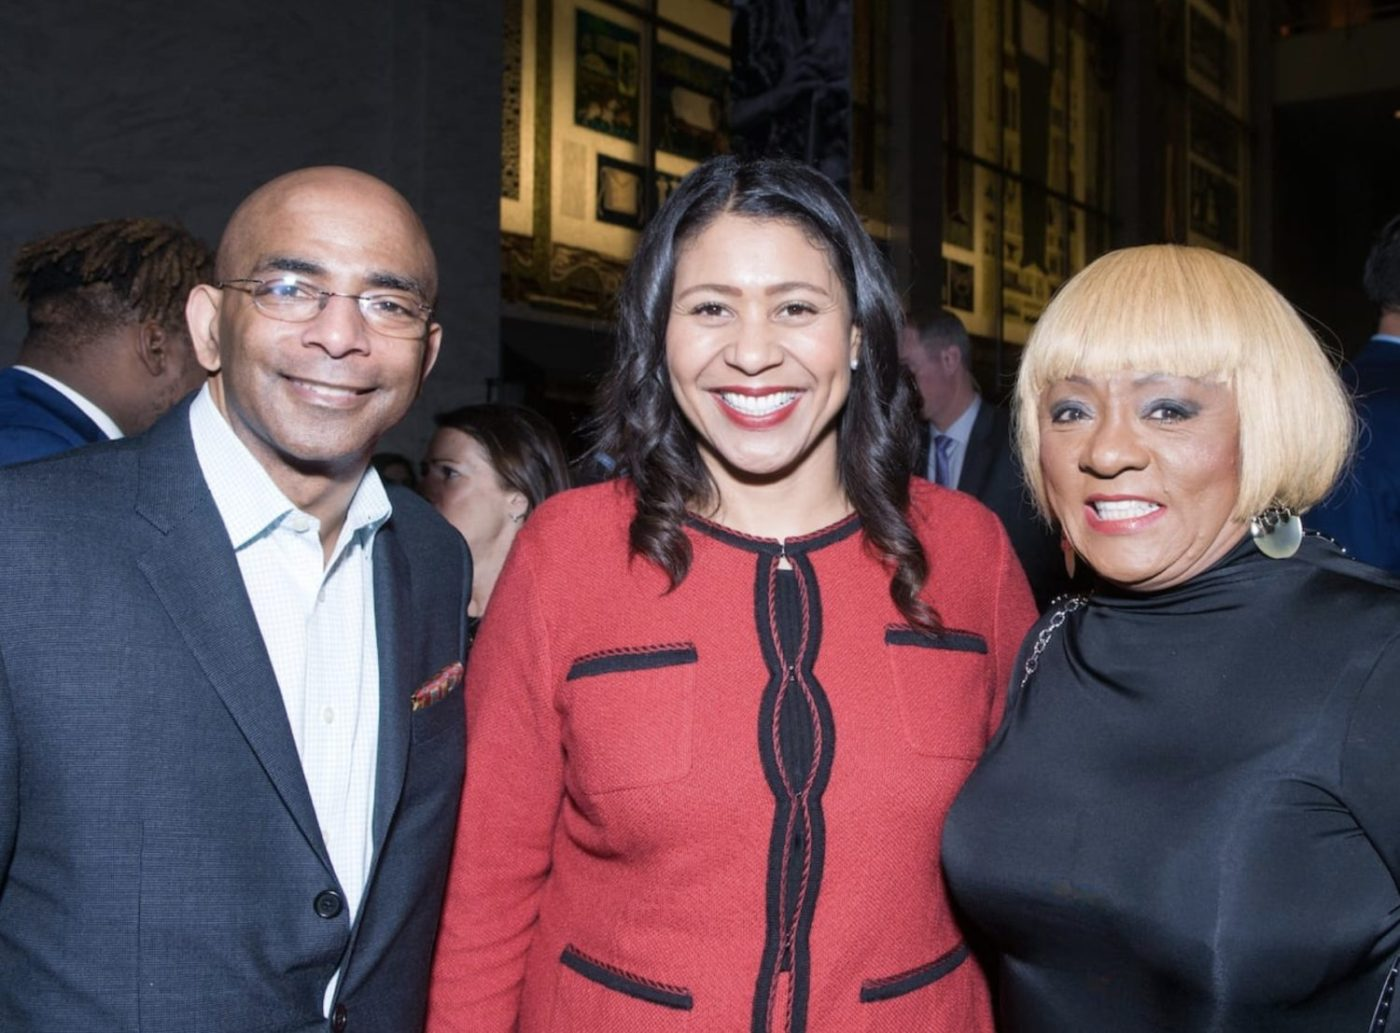 Steve-Bowdry-London-Breed-Brenda-Wright-by-Ria-Burman-Billy-Cole-Alain-McLaughlin-1400x1033, City Hall political corruption reaches community-based institutions, Local News & Views